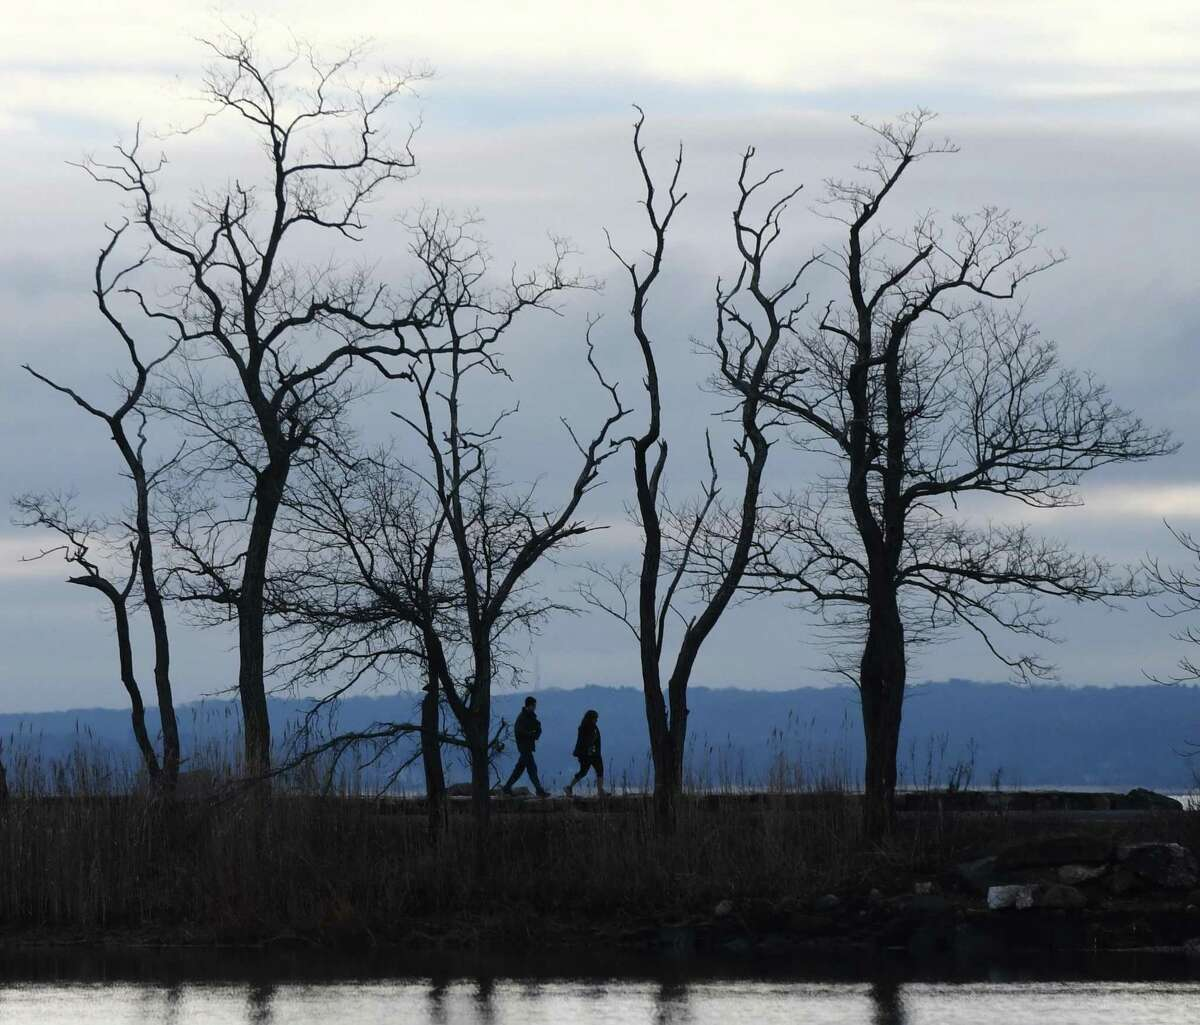 File photo: Folks walk along the water at Greenwich Point Park in Old Greenwich, Conn. Tuesday, Dec. 31, 2019.